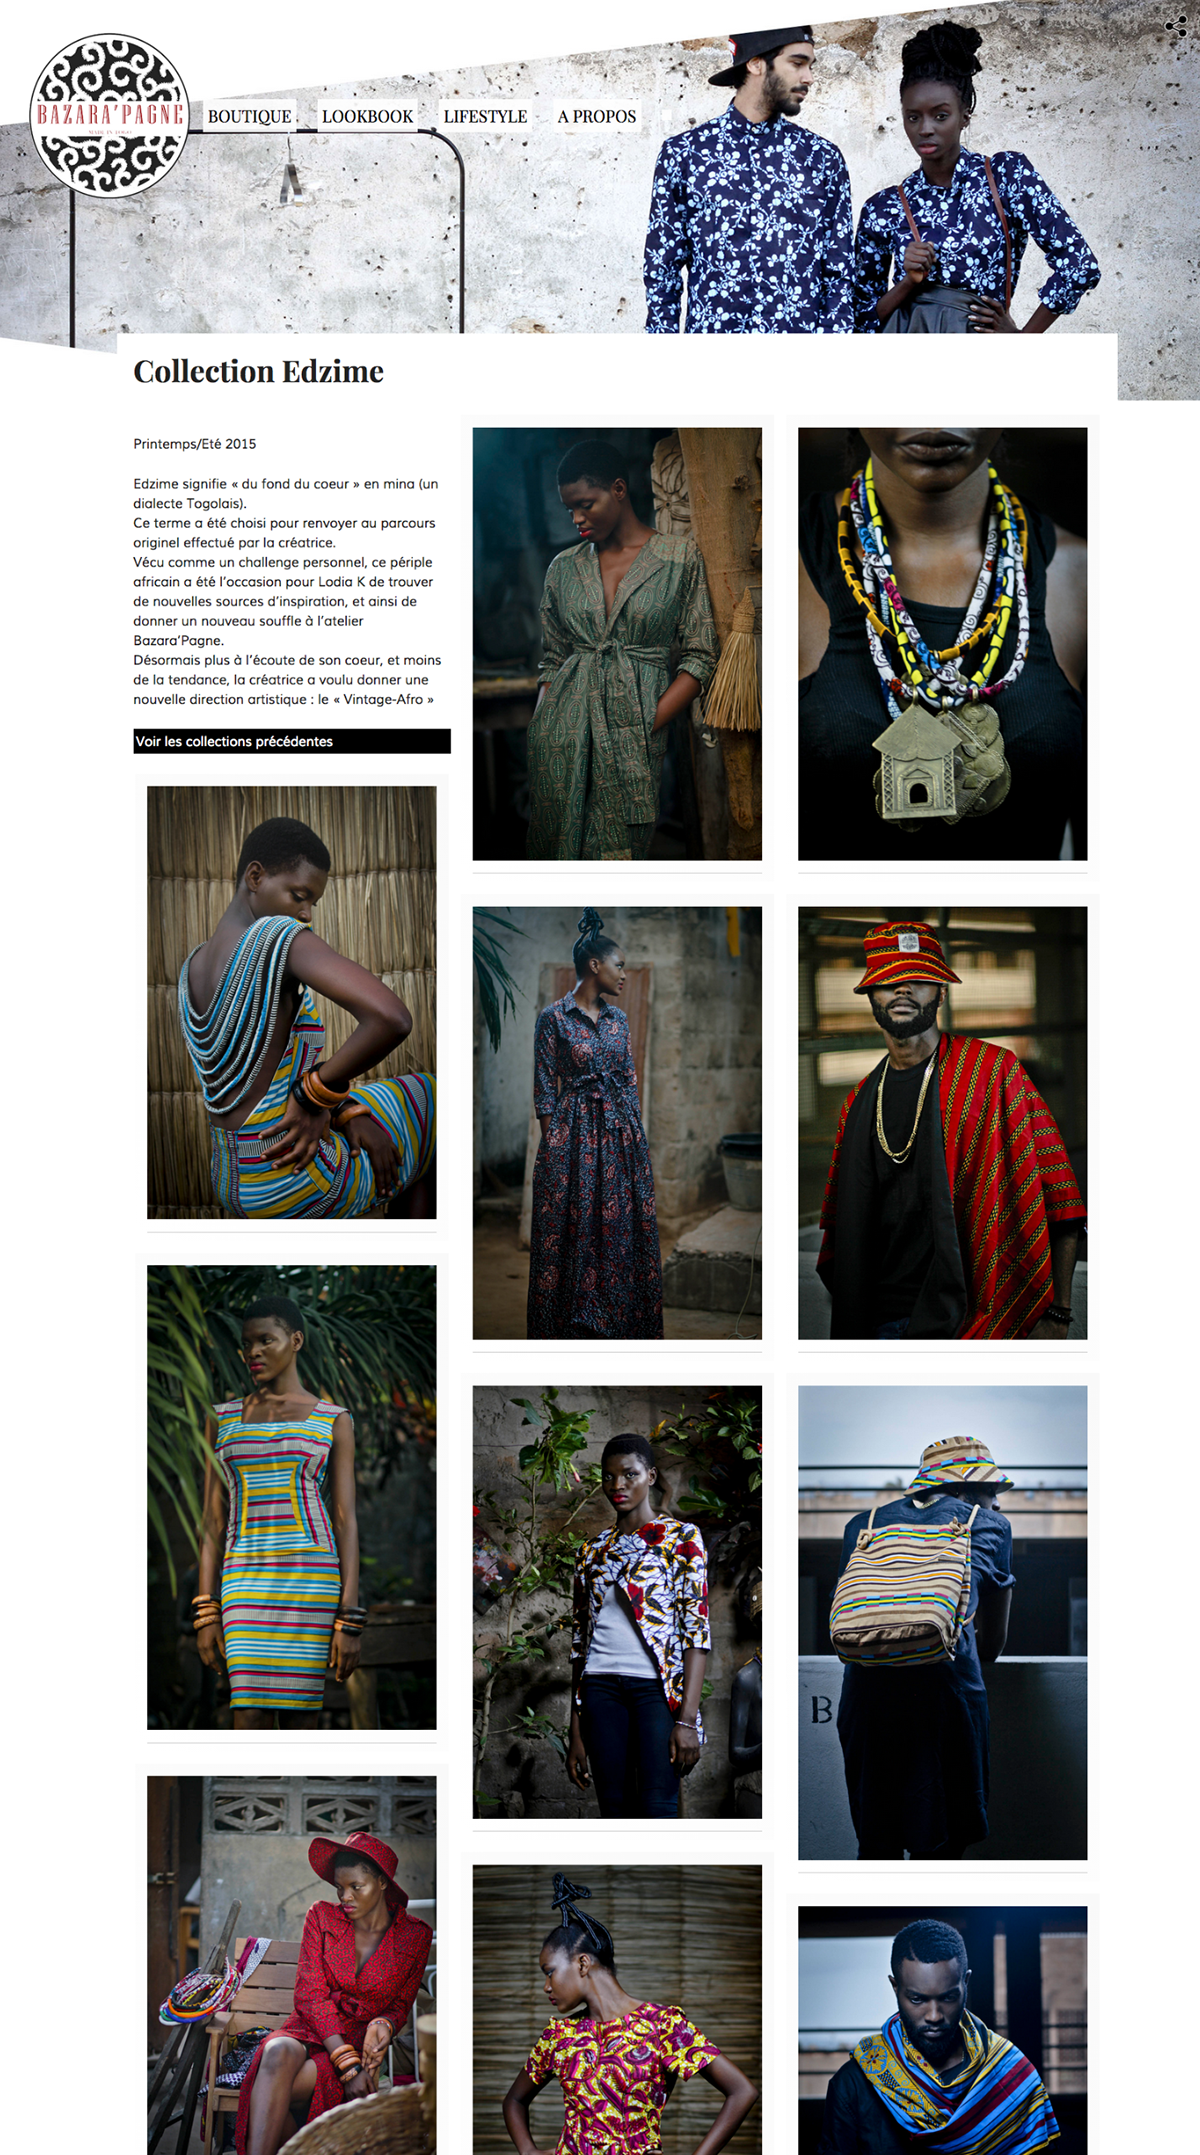 African Fashion,case sudy,snoods,bazara'pagne,eric dossou